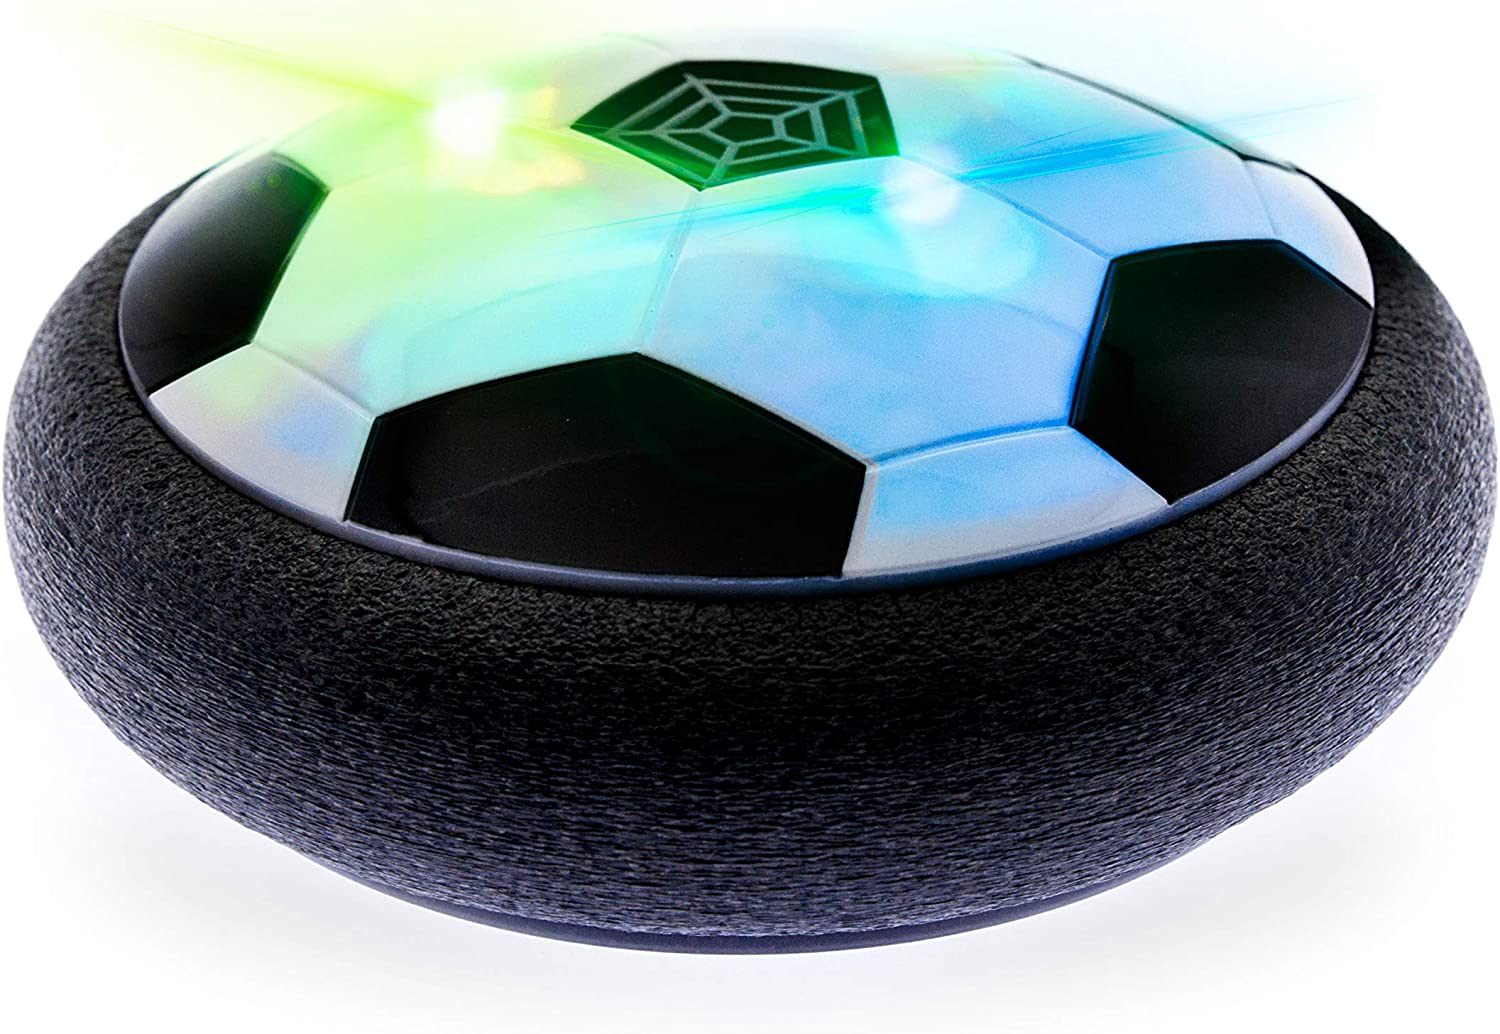 Trust Regular store PicassoTiles Soccer Hoverball Air Airlifte Electric Power Hockey